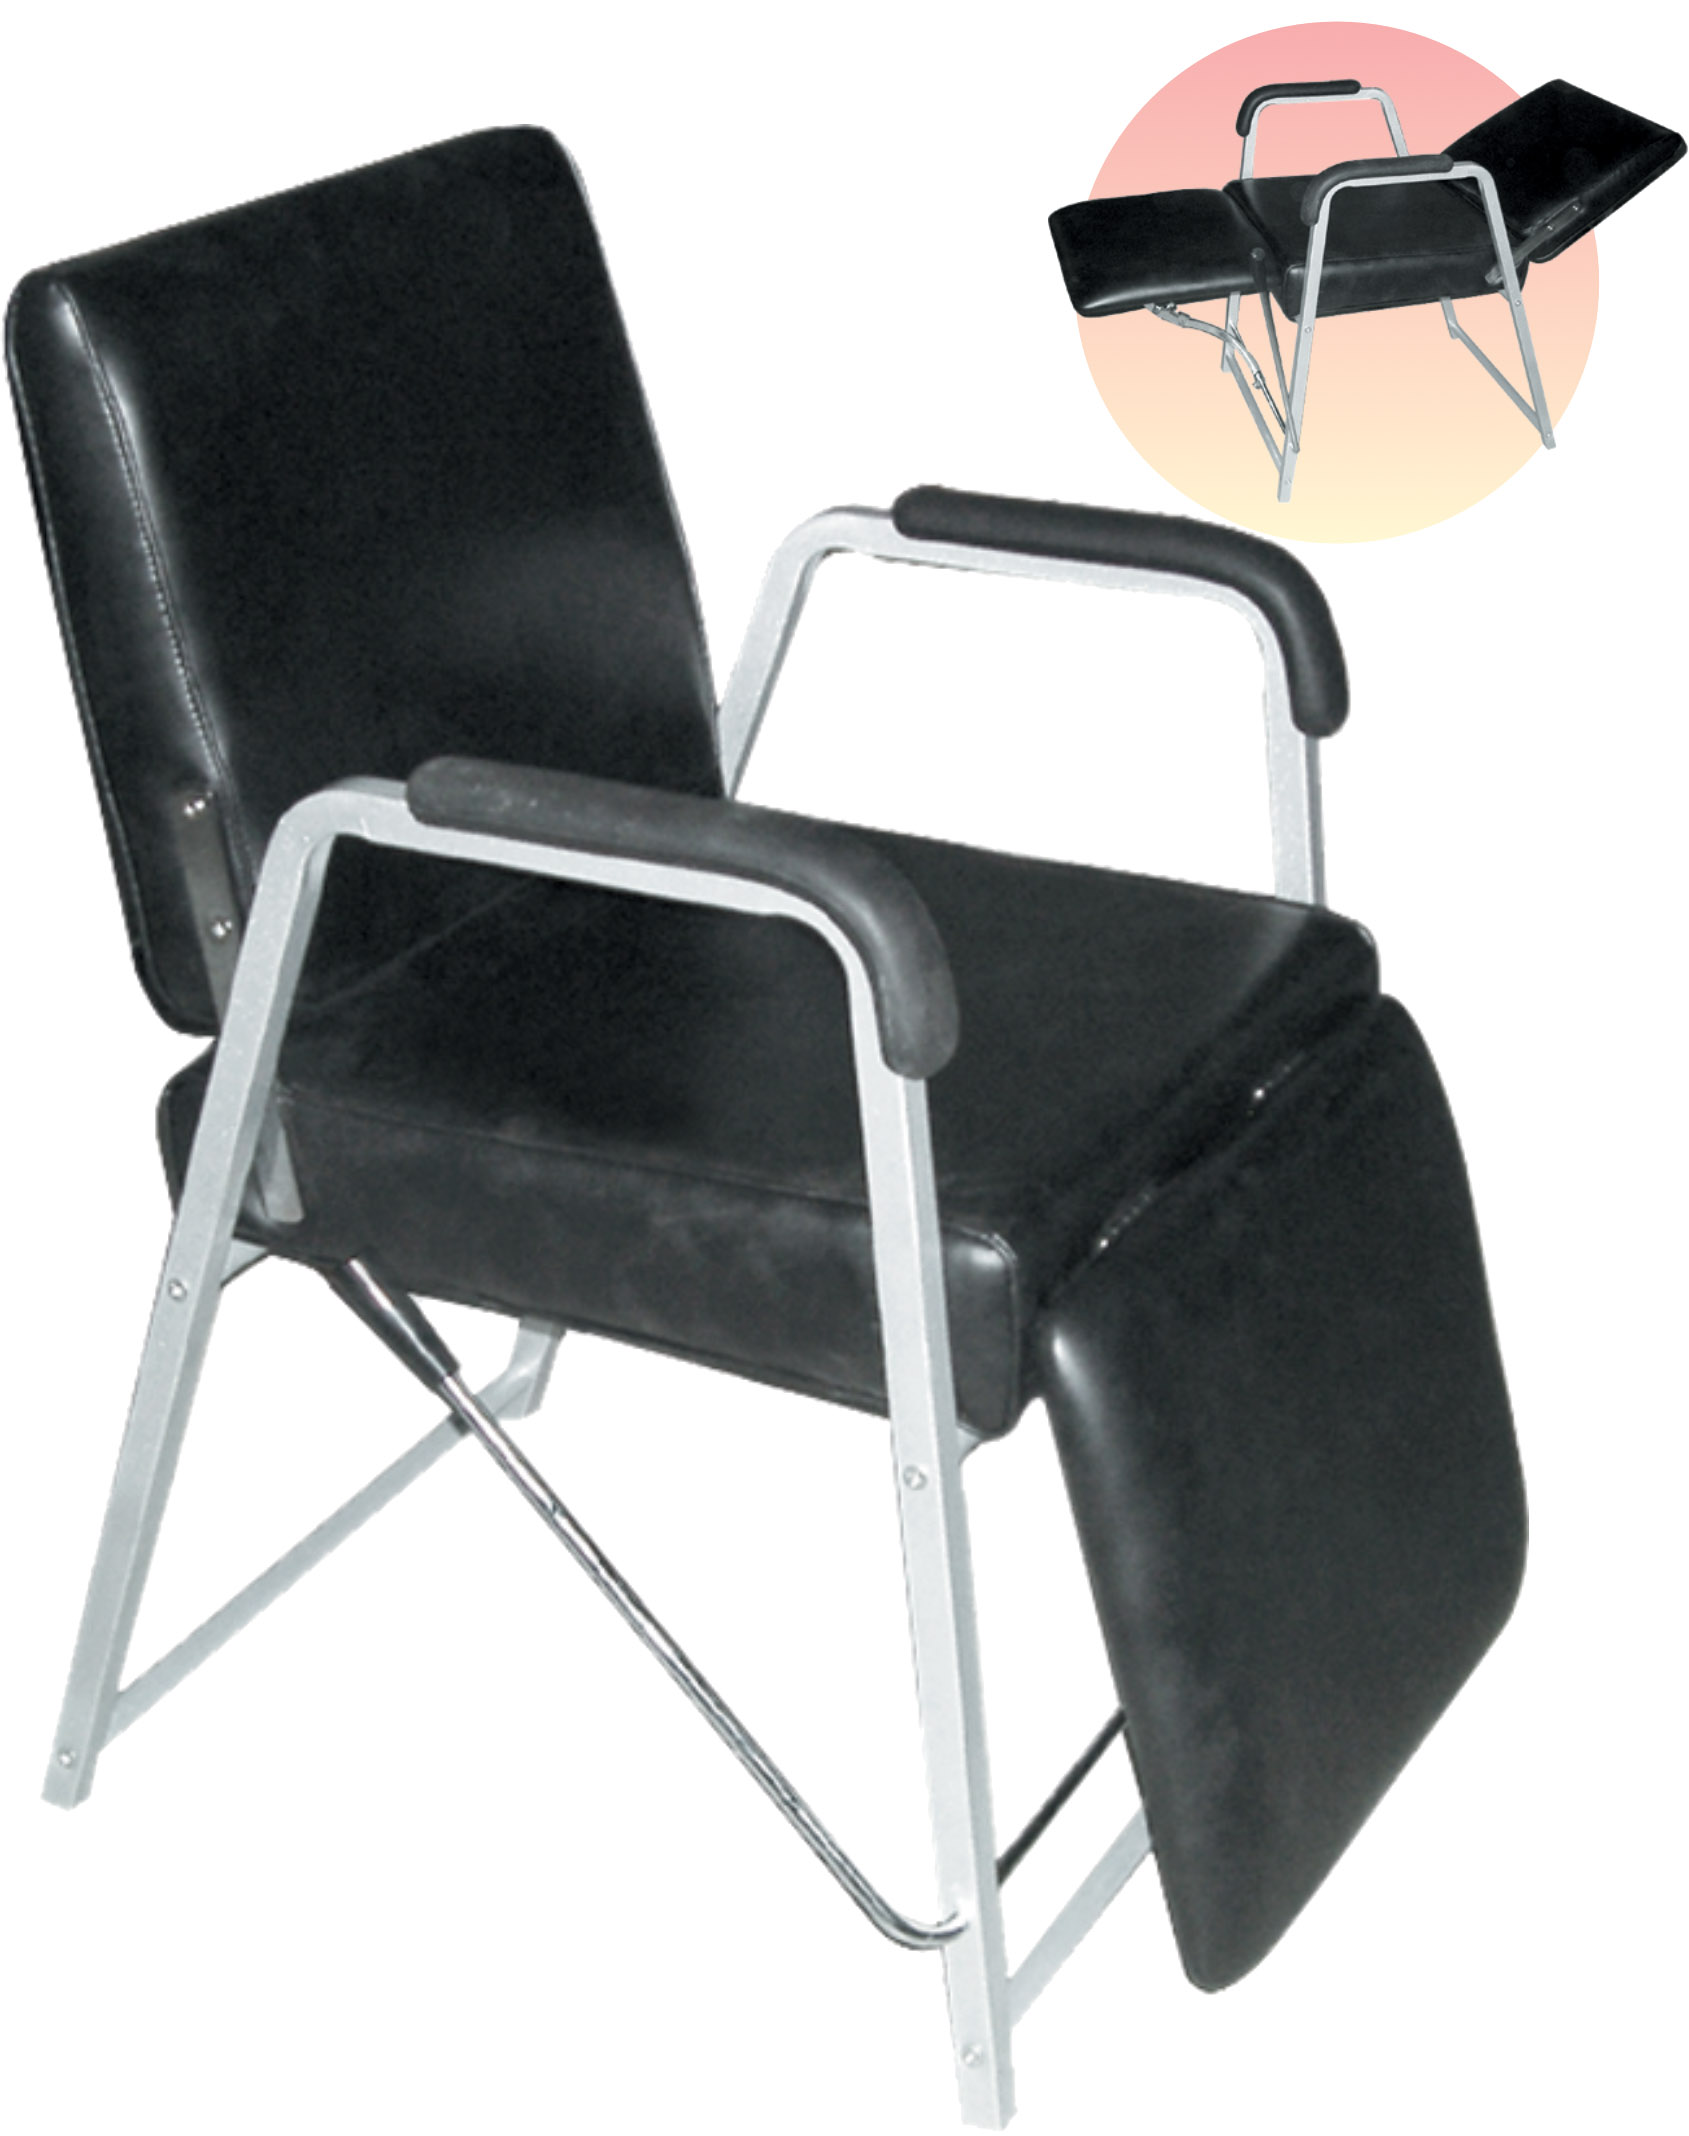 chair with leg rest india damask banquet covers classic reclining shampoo adjustable back and